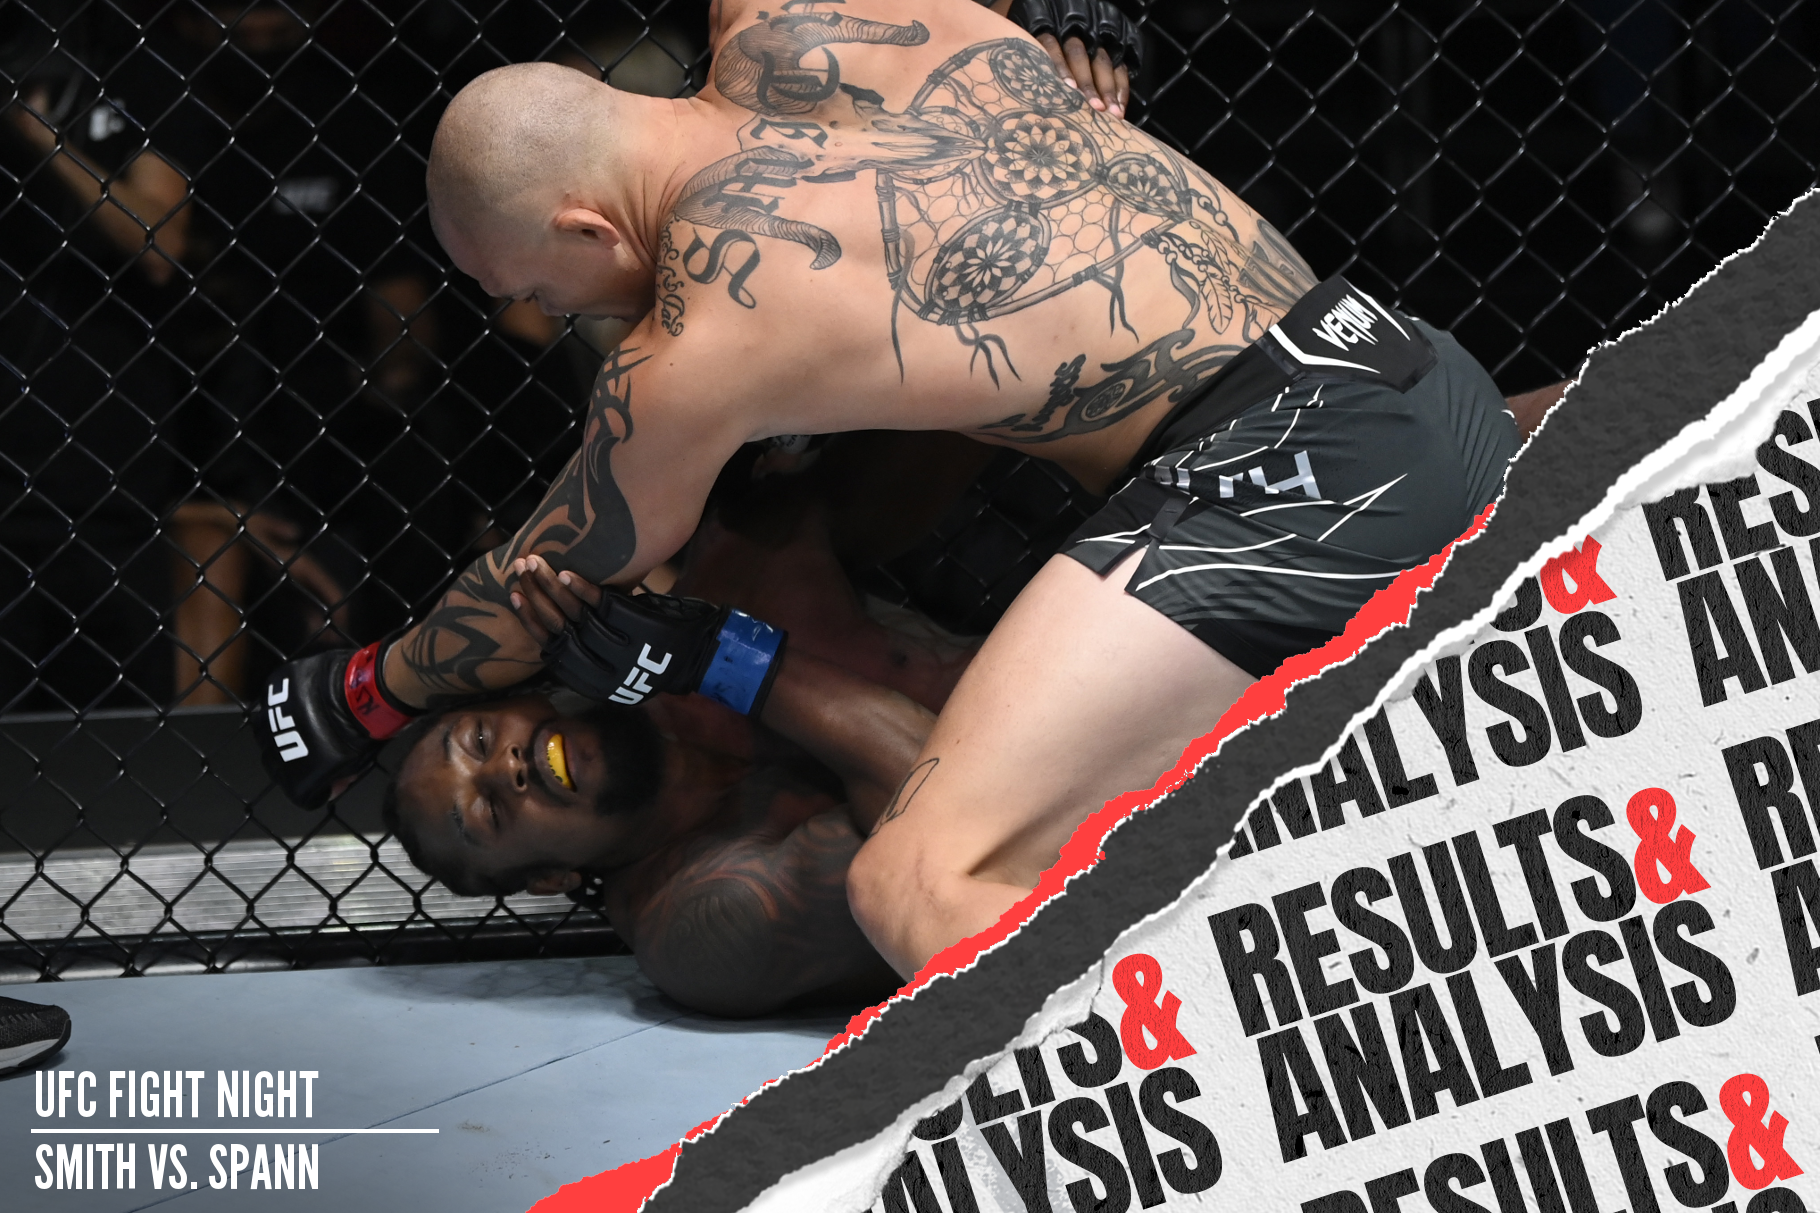 Anthony Smith submitted Ryan Spann in the uFC Vegas 37 main event.